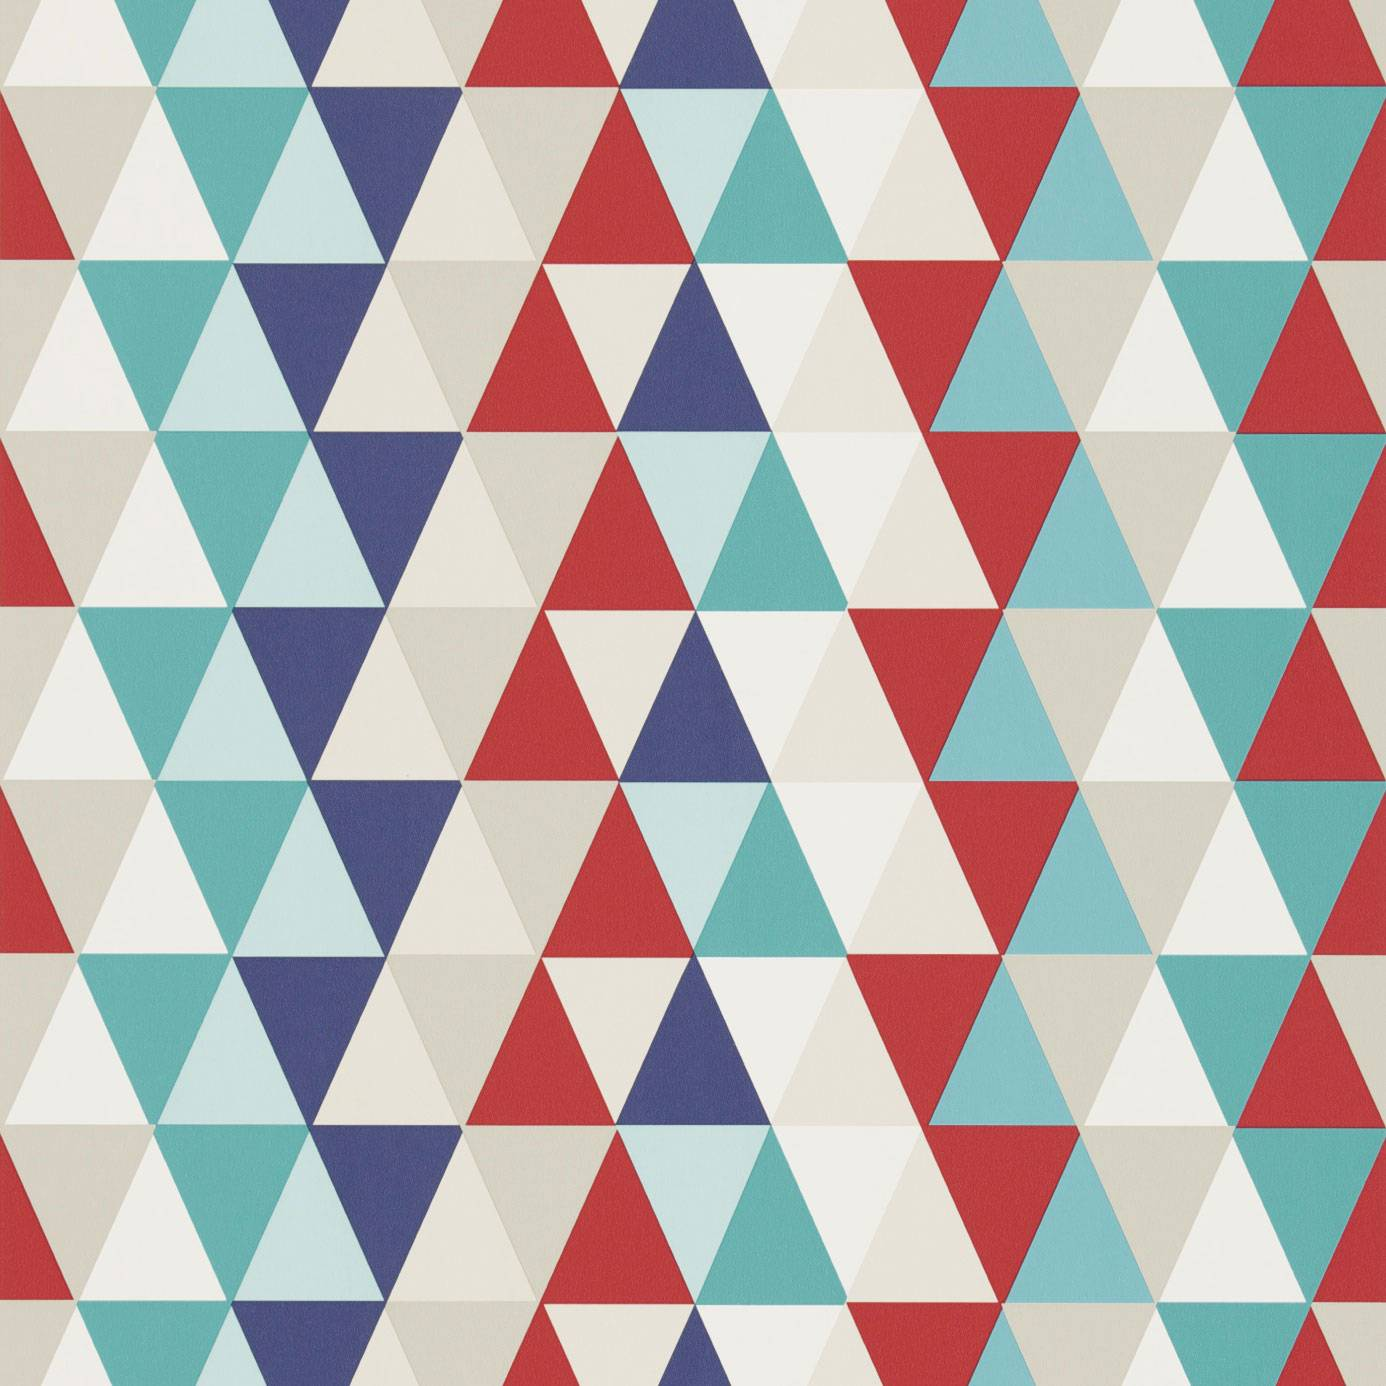 Harlequin All About Me Fabrics Wallpapers Kaleidoscope Wallpaper 1386x1386